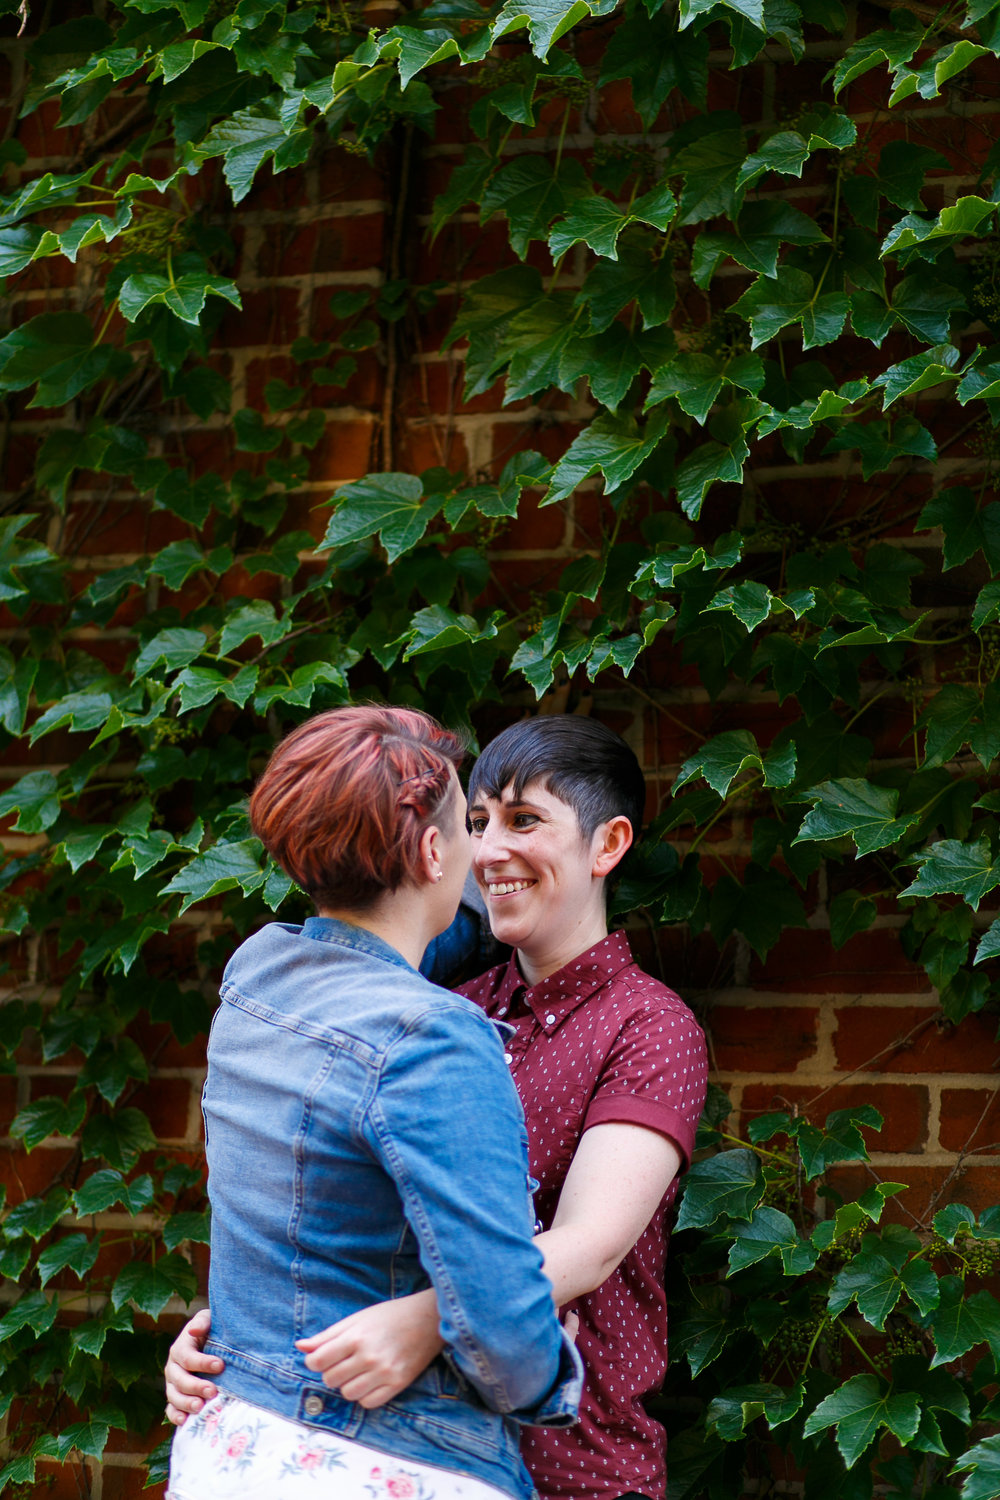 LGBTQ Baltimore Engagement Session with lesbian photographer Swiger Photography33.jpg